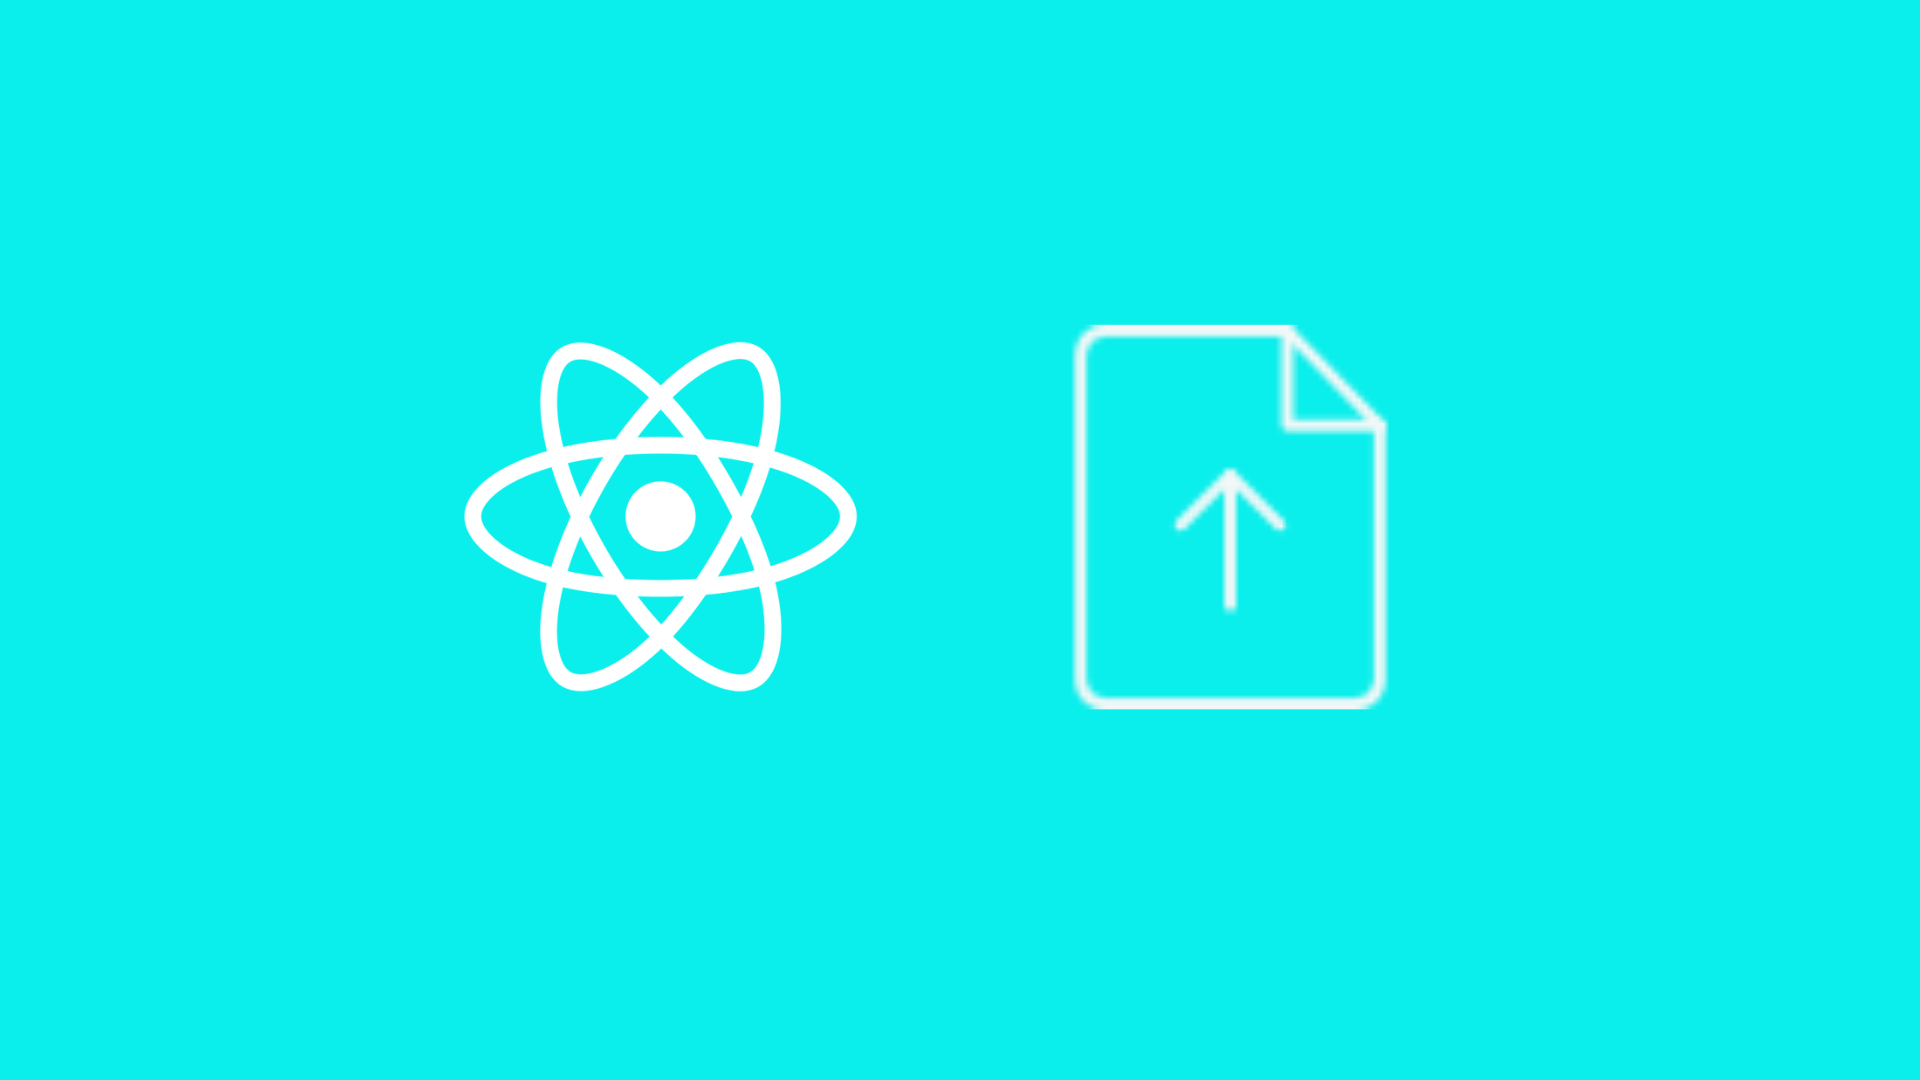 How to set up file upload with React and Node - Krissanawat